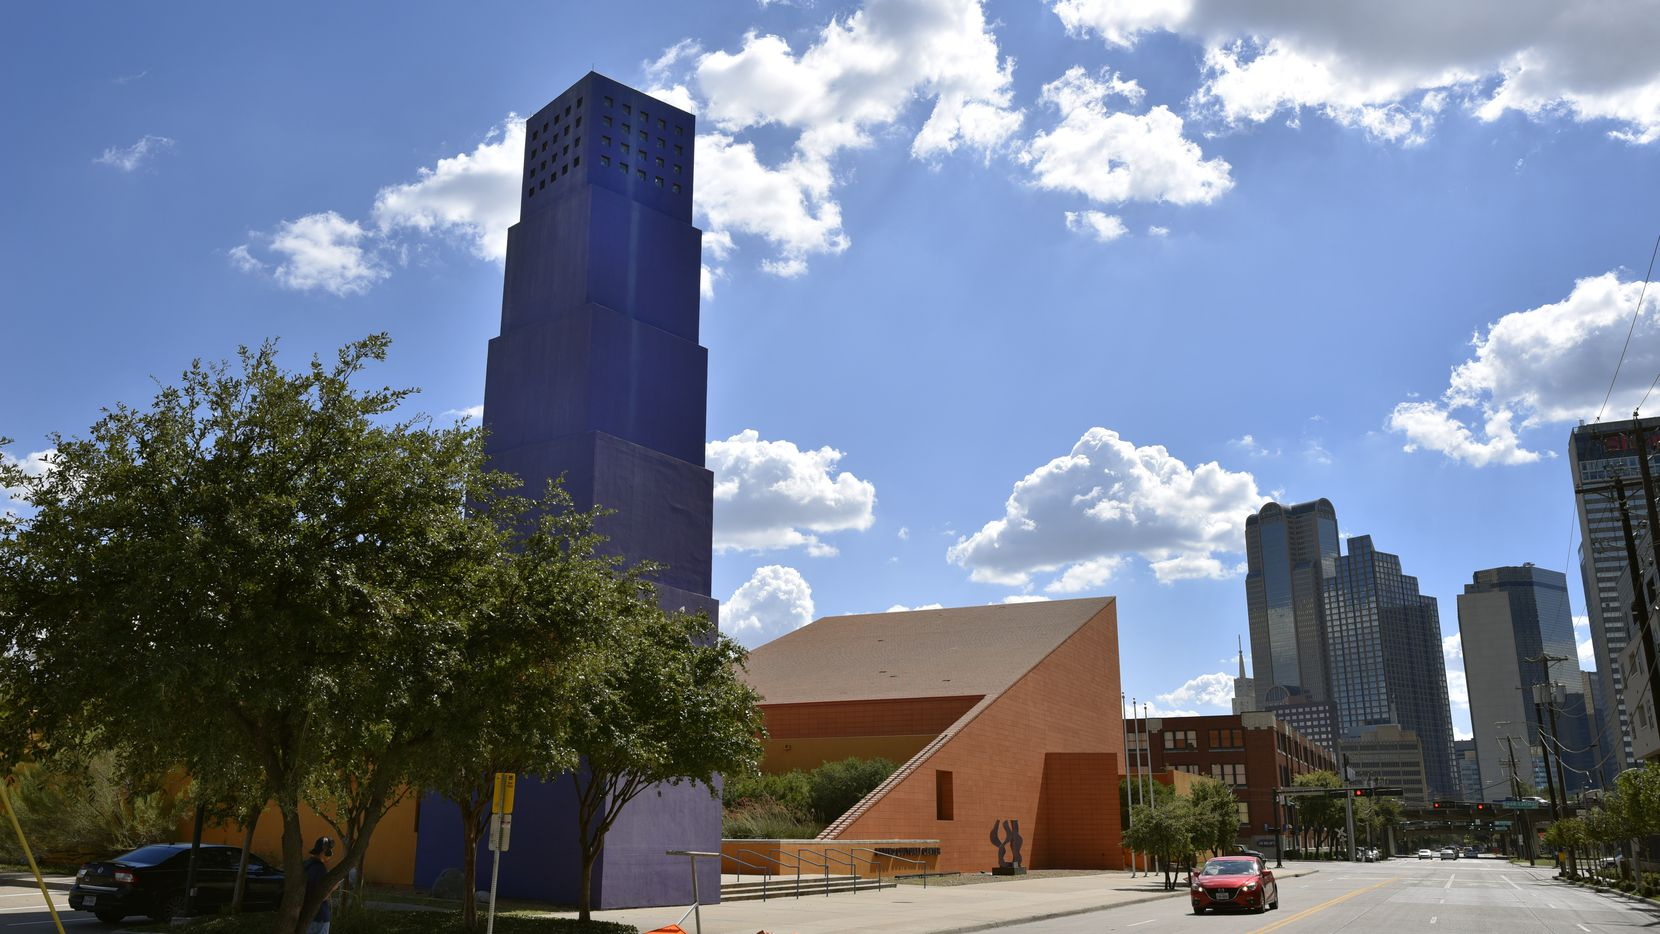 The Latino Cultural Center in Dallas from Live Oak Street, Aug. 31, 2018.